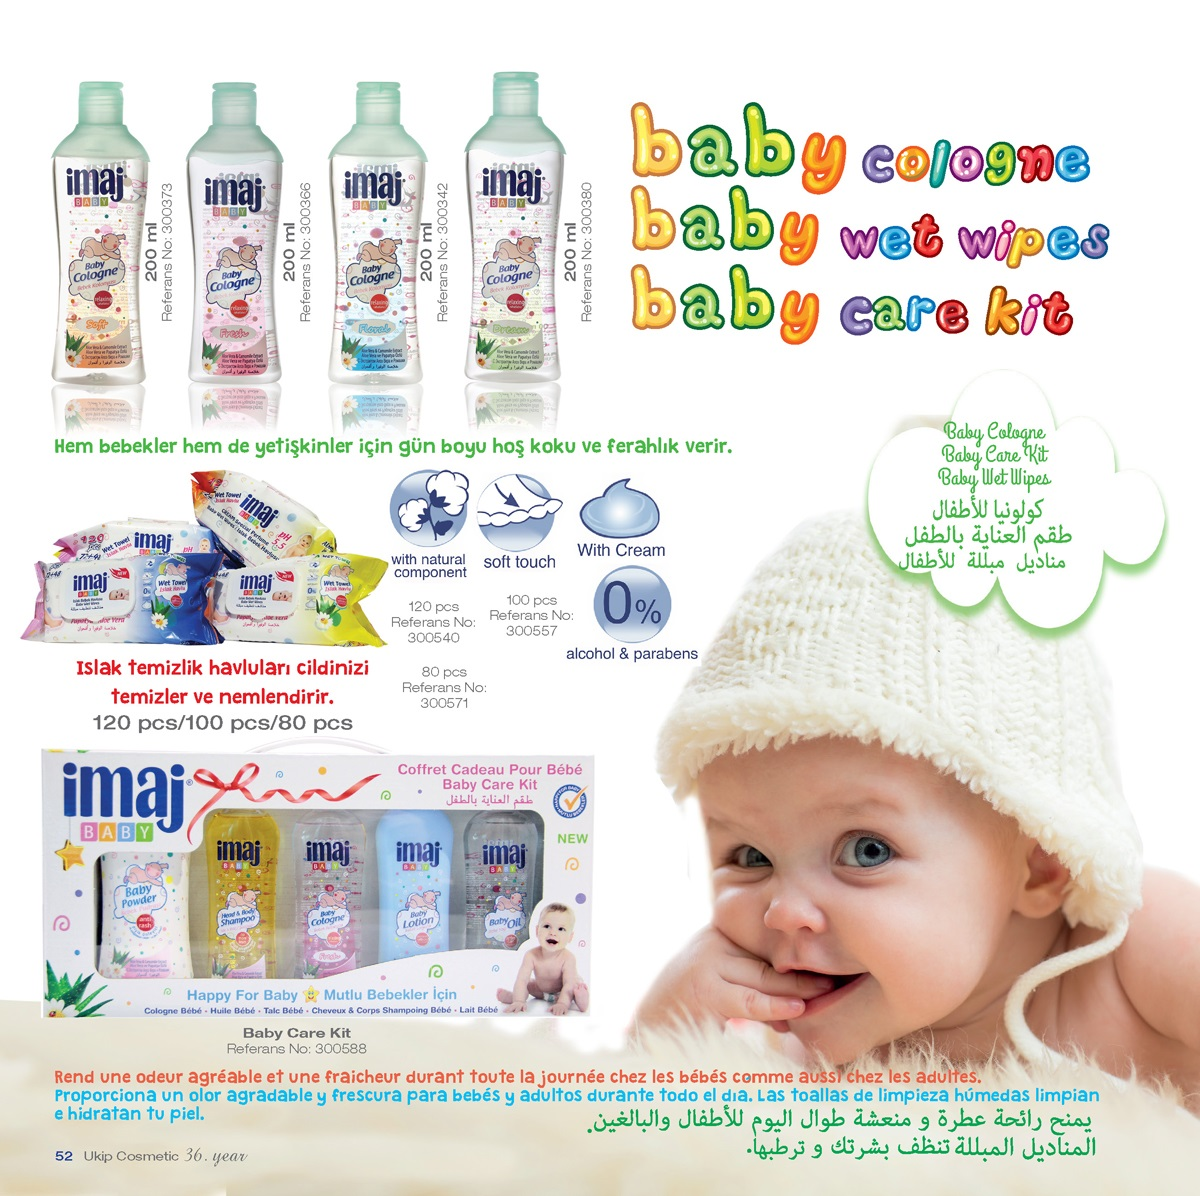 Baby cologne, baby wet wipes, baby care kit Imaj